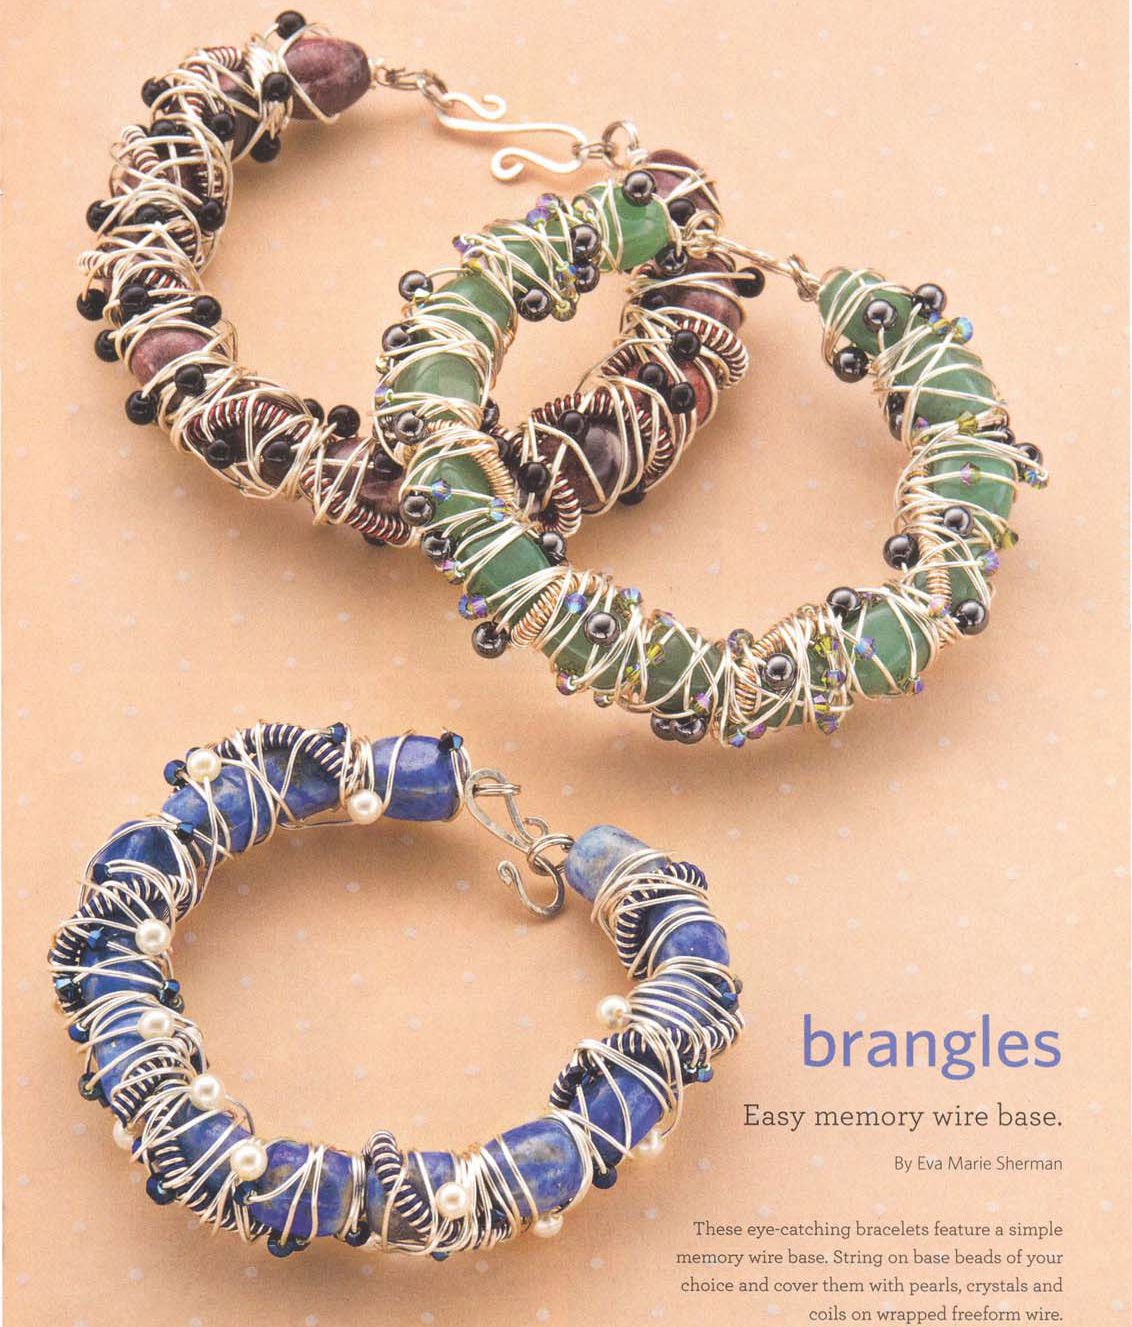 Eva Sherman' s Brangles feature a memory wire base and appeared in Step by Step Wire Jewelry December 2010/January 2011. Photo: Jim Lawson